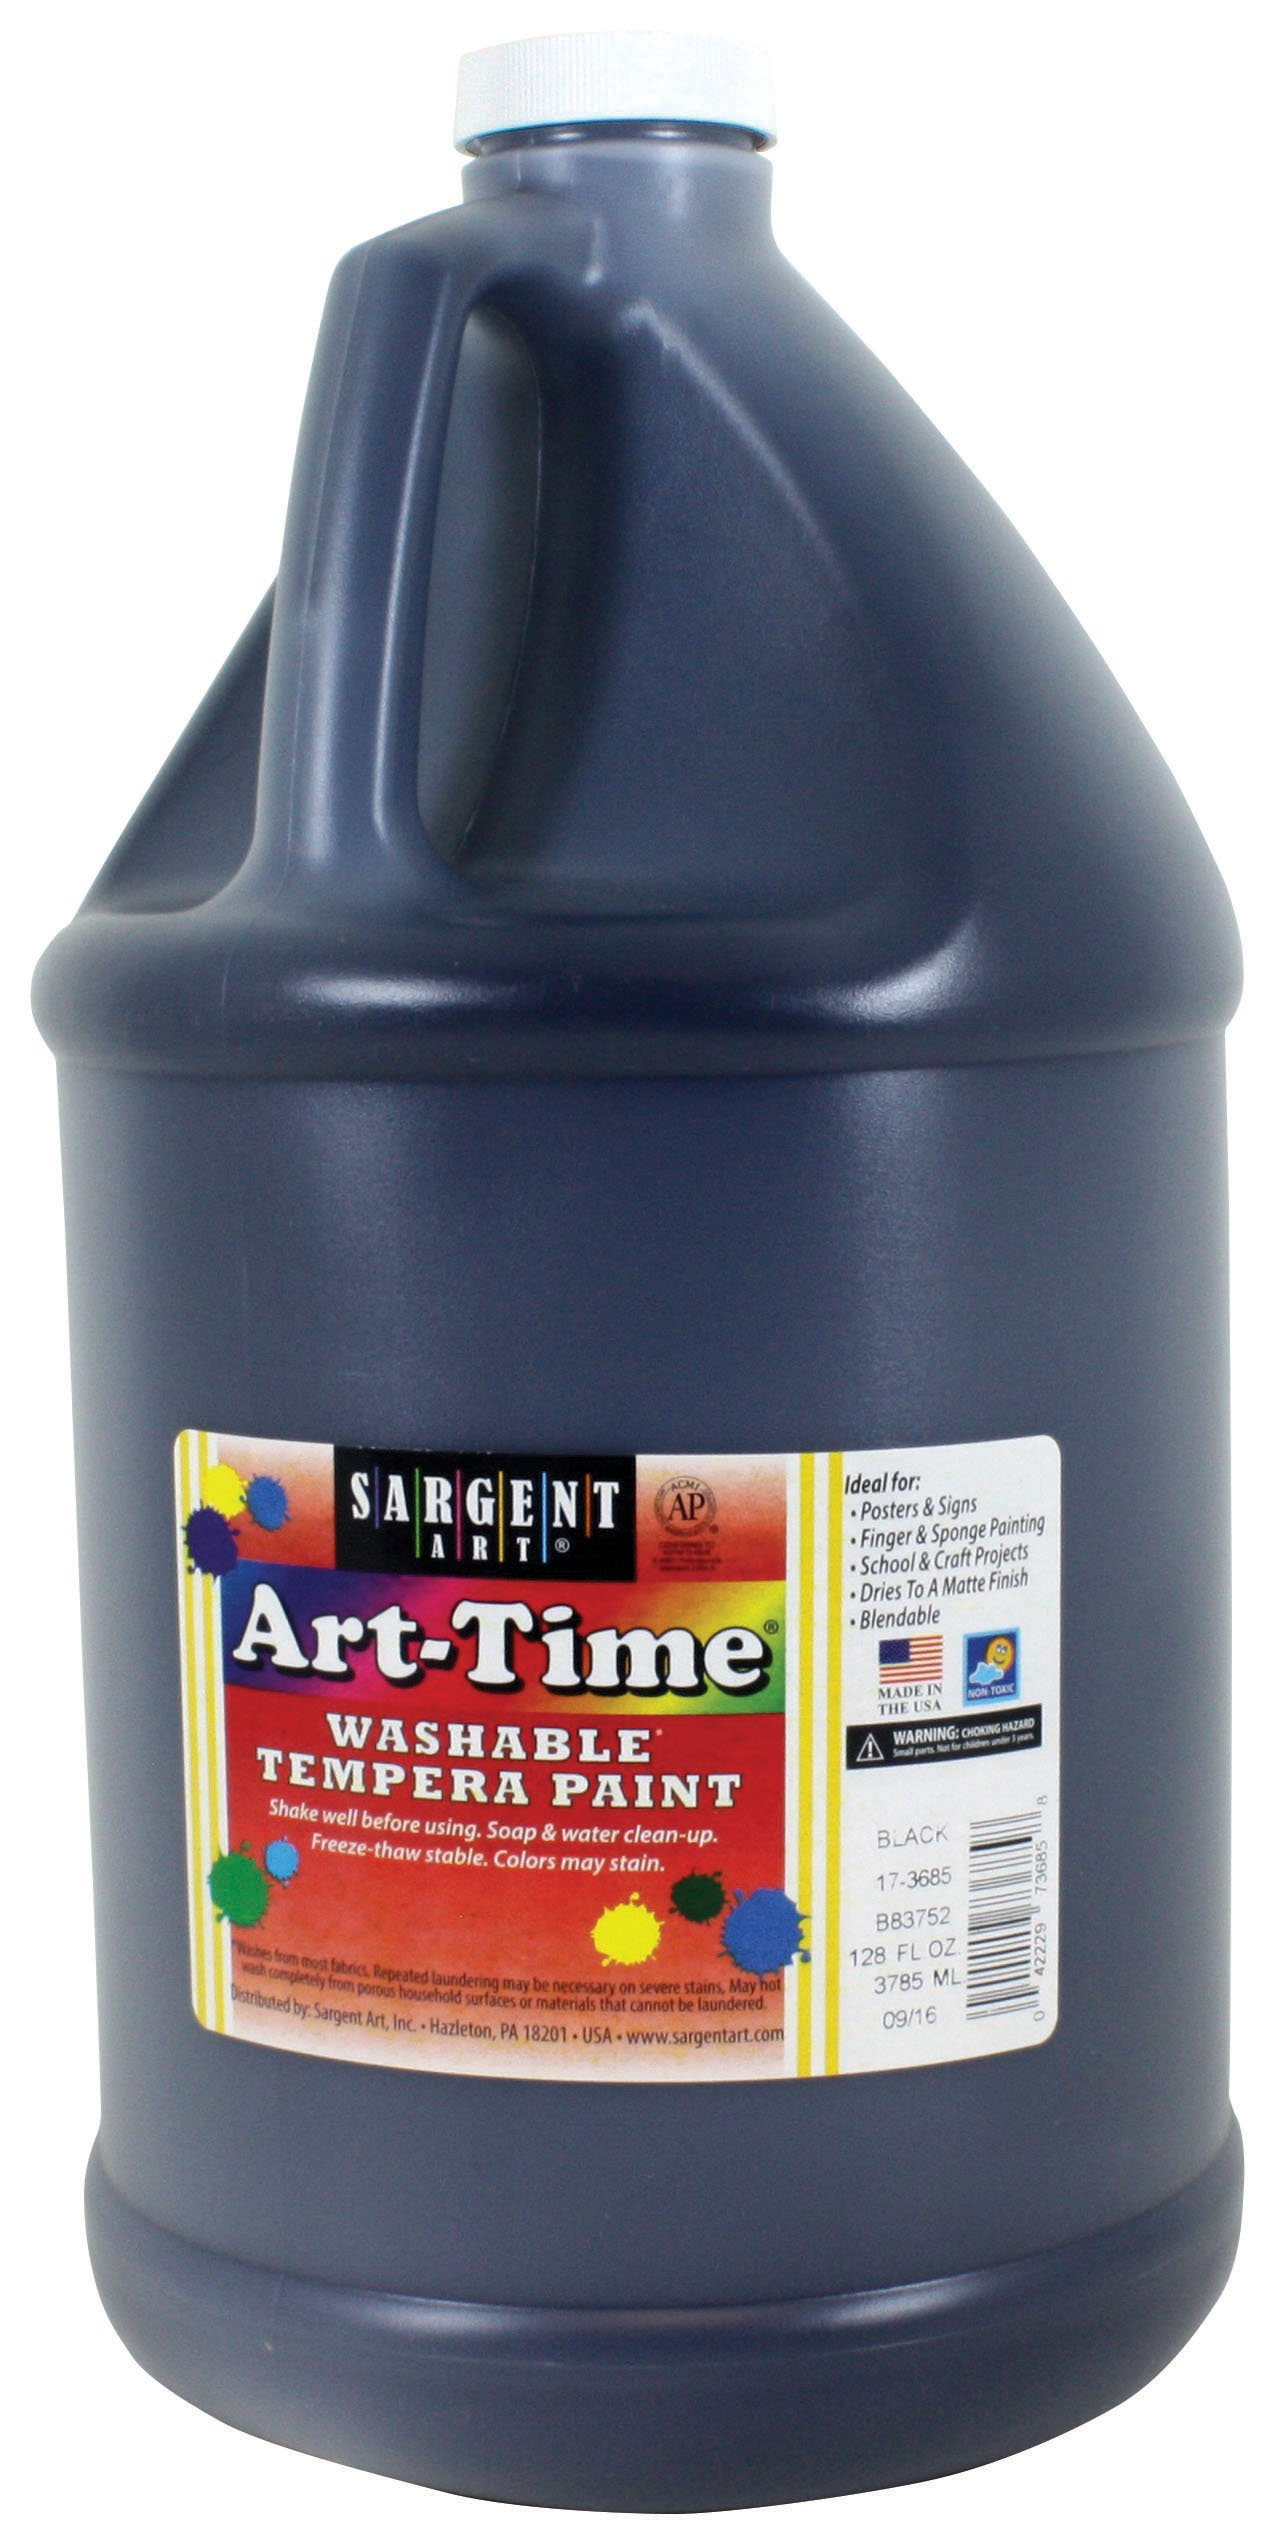 Sargent Art 17-3685 128 oz Black Art-Time Washable Tempera Paint,1 gallon